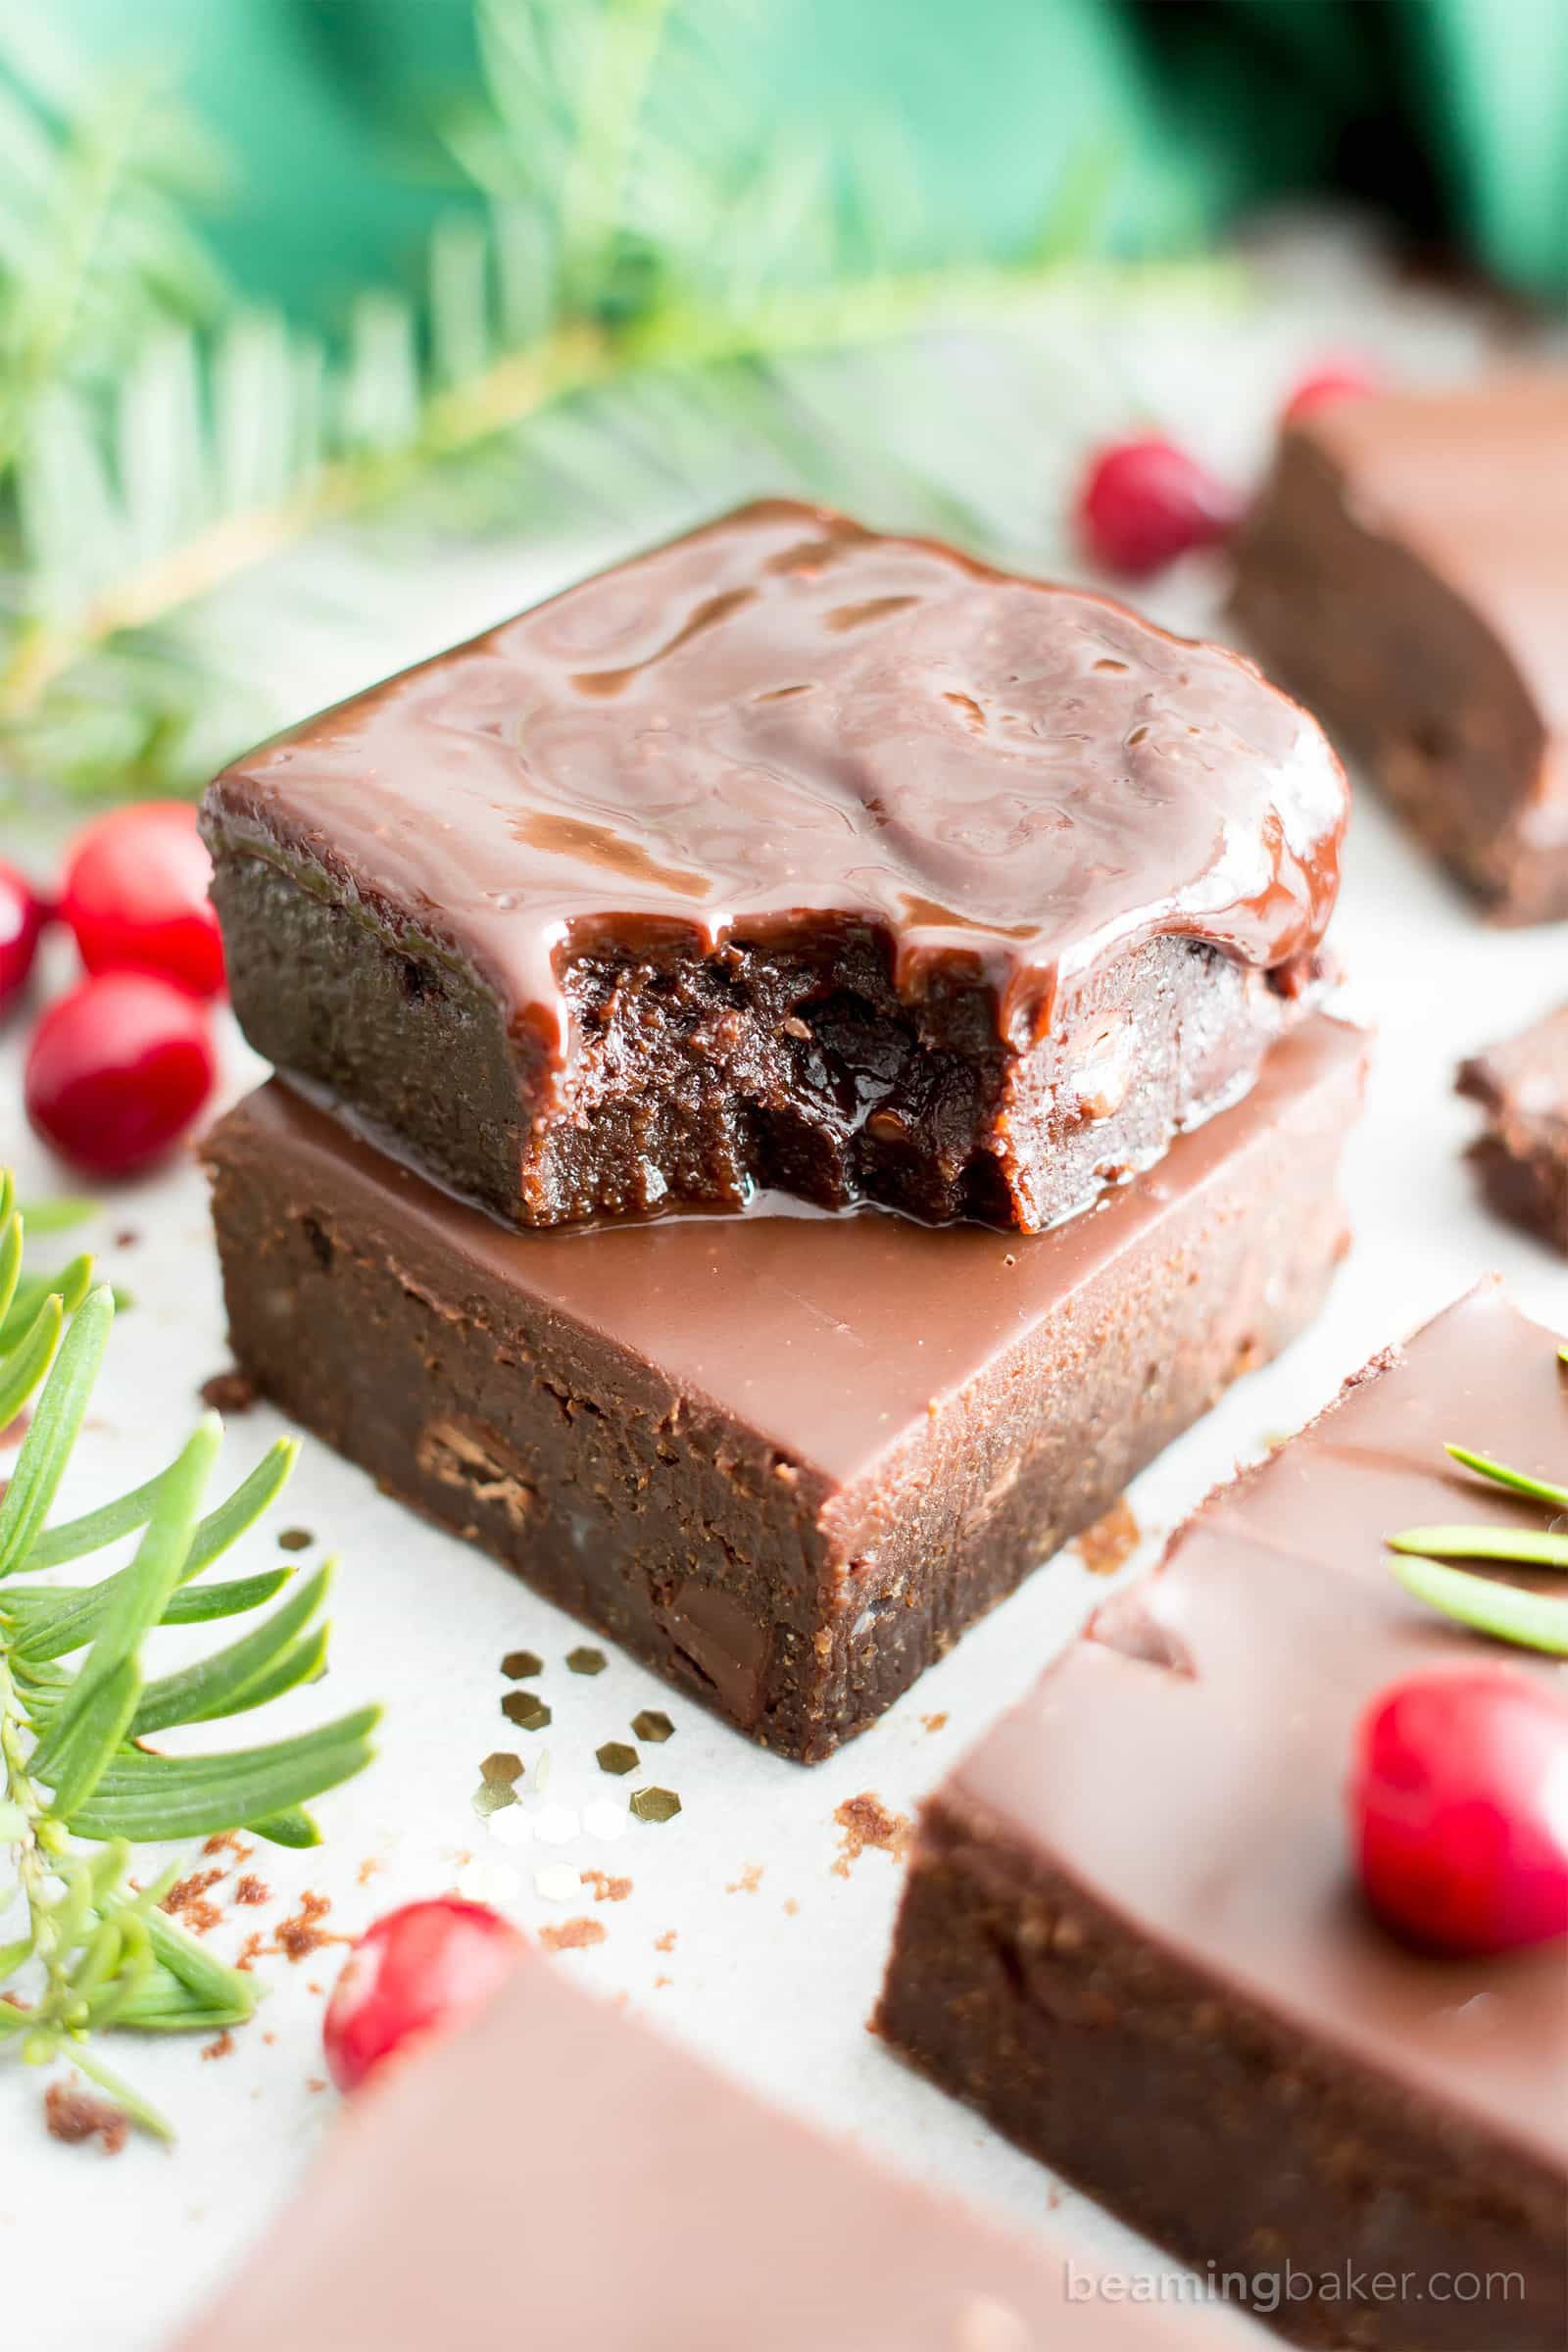 Moist & Fudgy Ganache Peppermint Brownies Recipe (V, GF): an easy recipe for indulgently fudgy, cool mint brownies topped with silky smooth chocolate ganache made with healthy ingredients. #Vegan #GlutenFree #DairyFree #HealthyHolidayDesserts #Desserts | Recipe on BeamingBaker.com